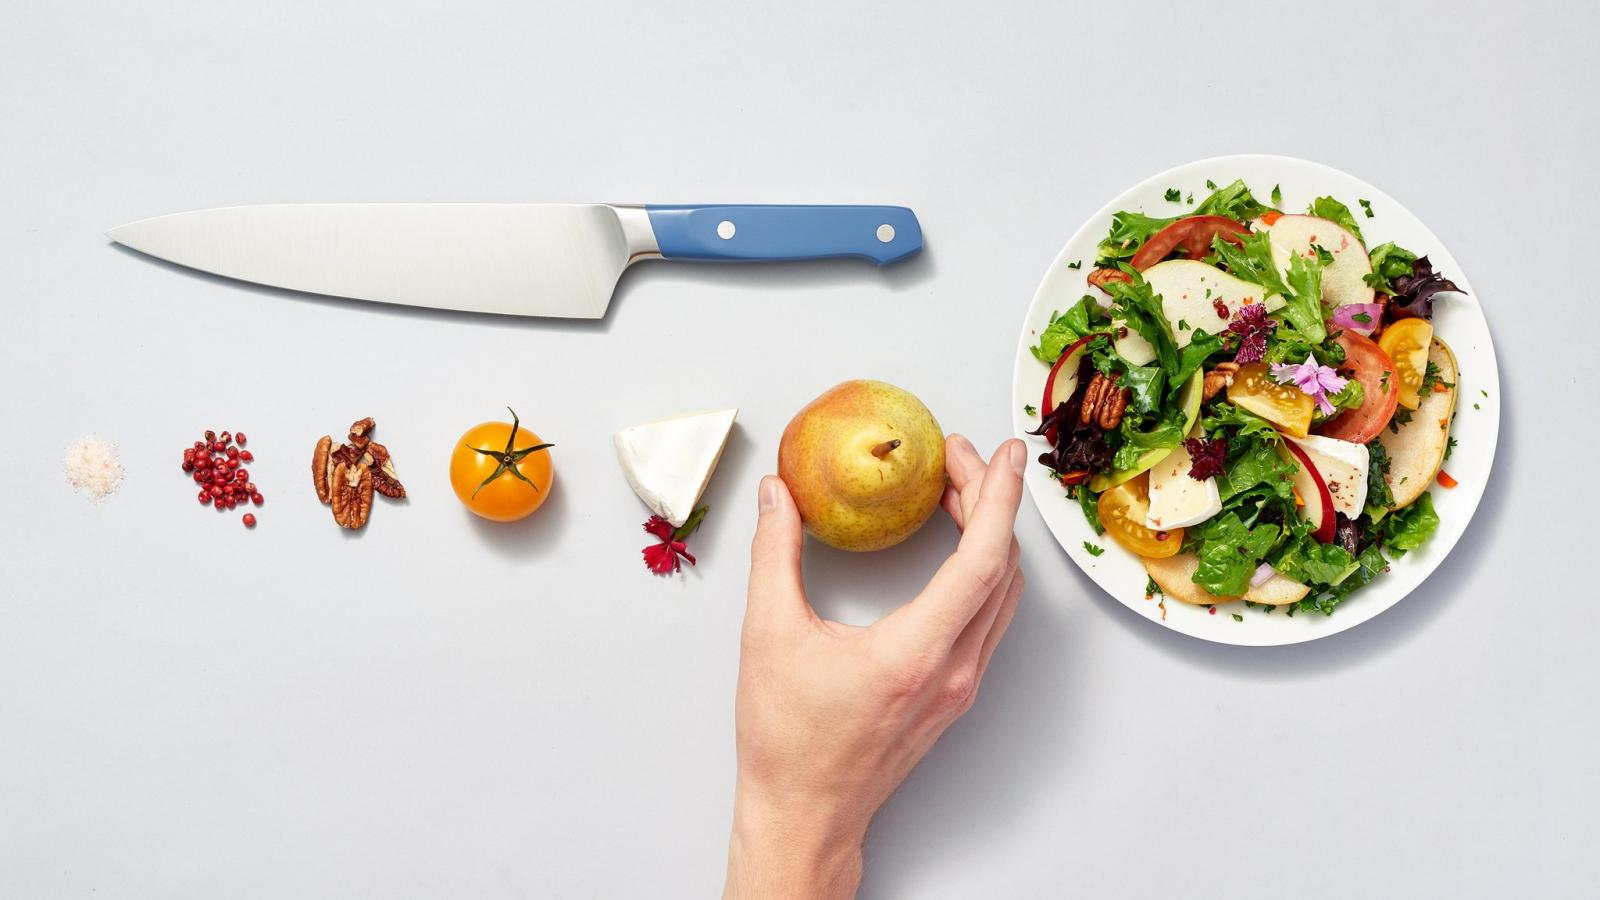 Misen : The Best, Most Thoughtfully Designed Chef's Knives You'll Ever Need